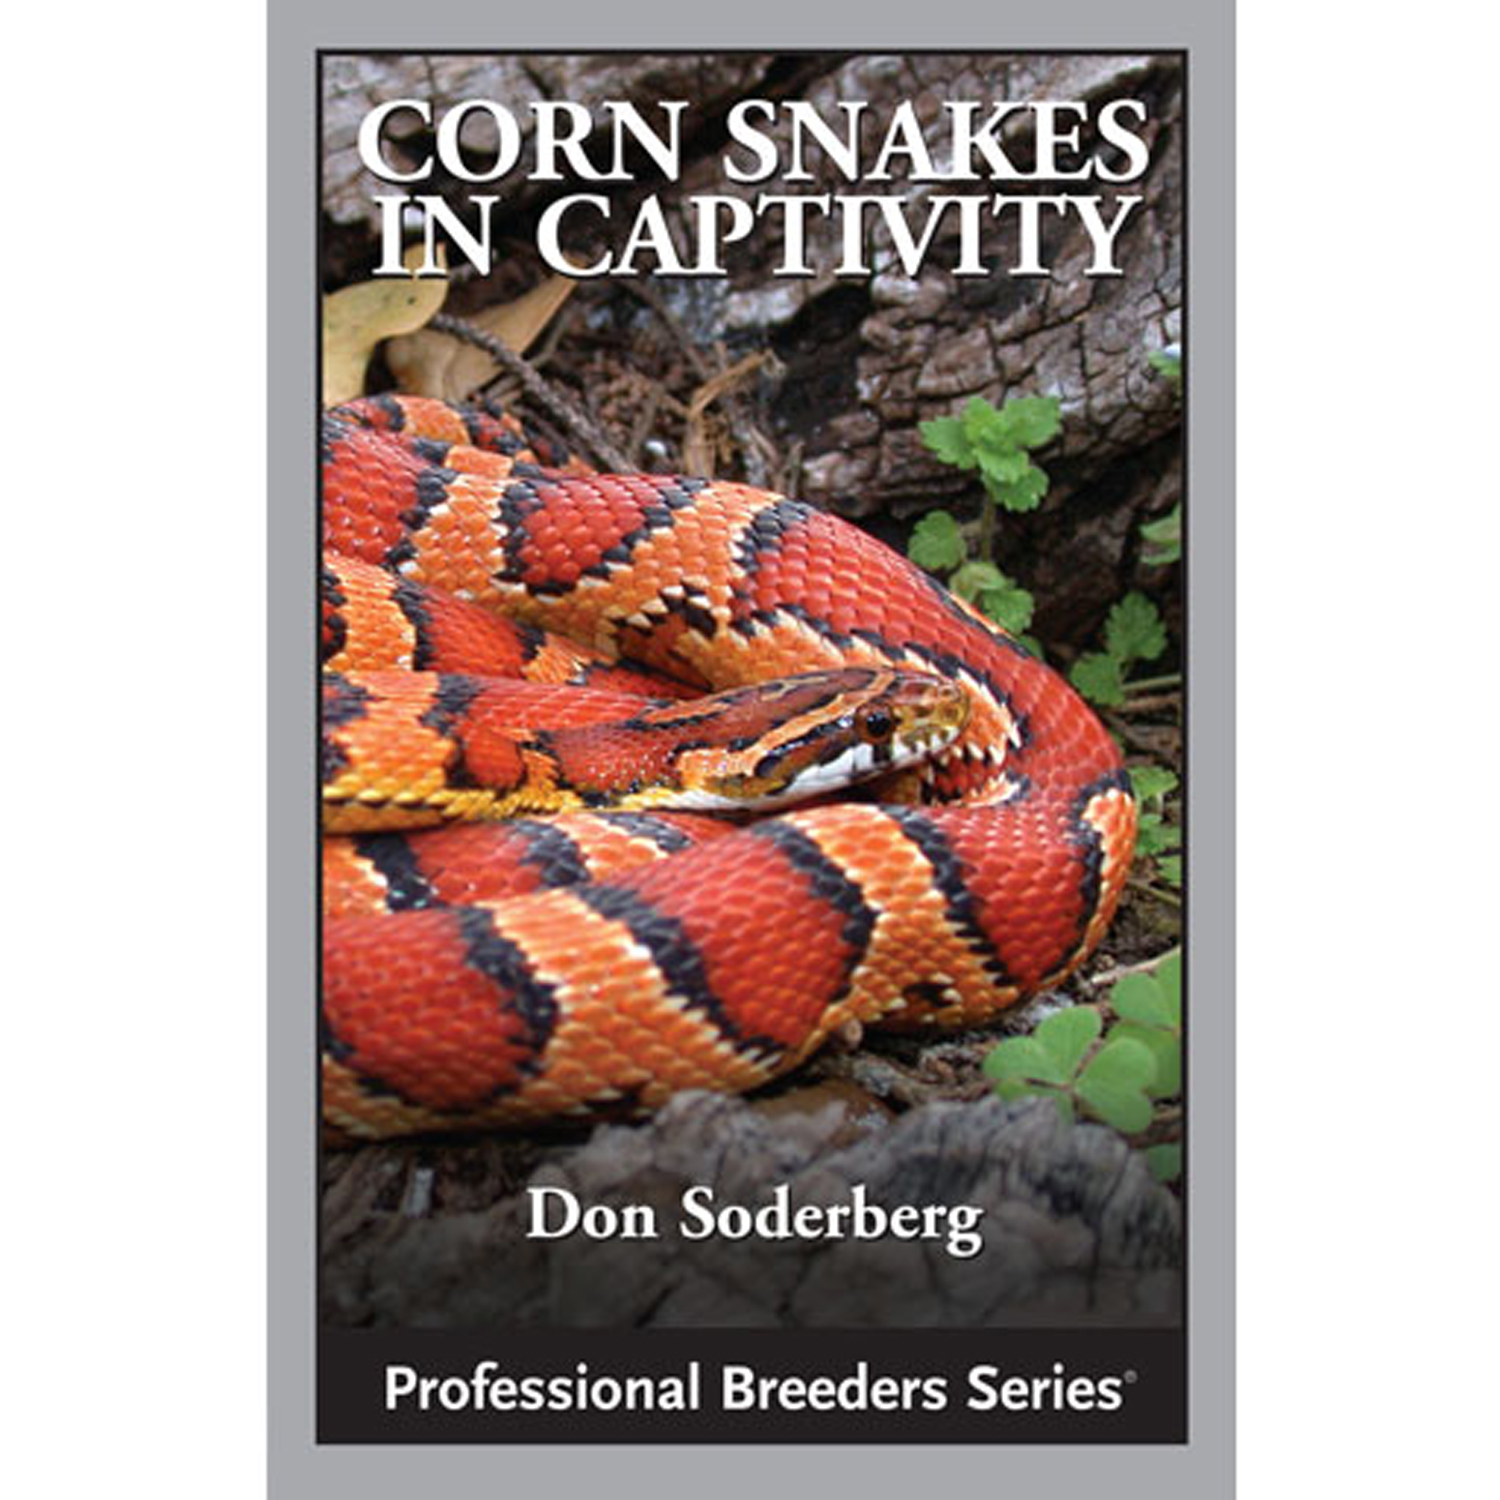 Corn Snakes in Captivity